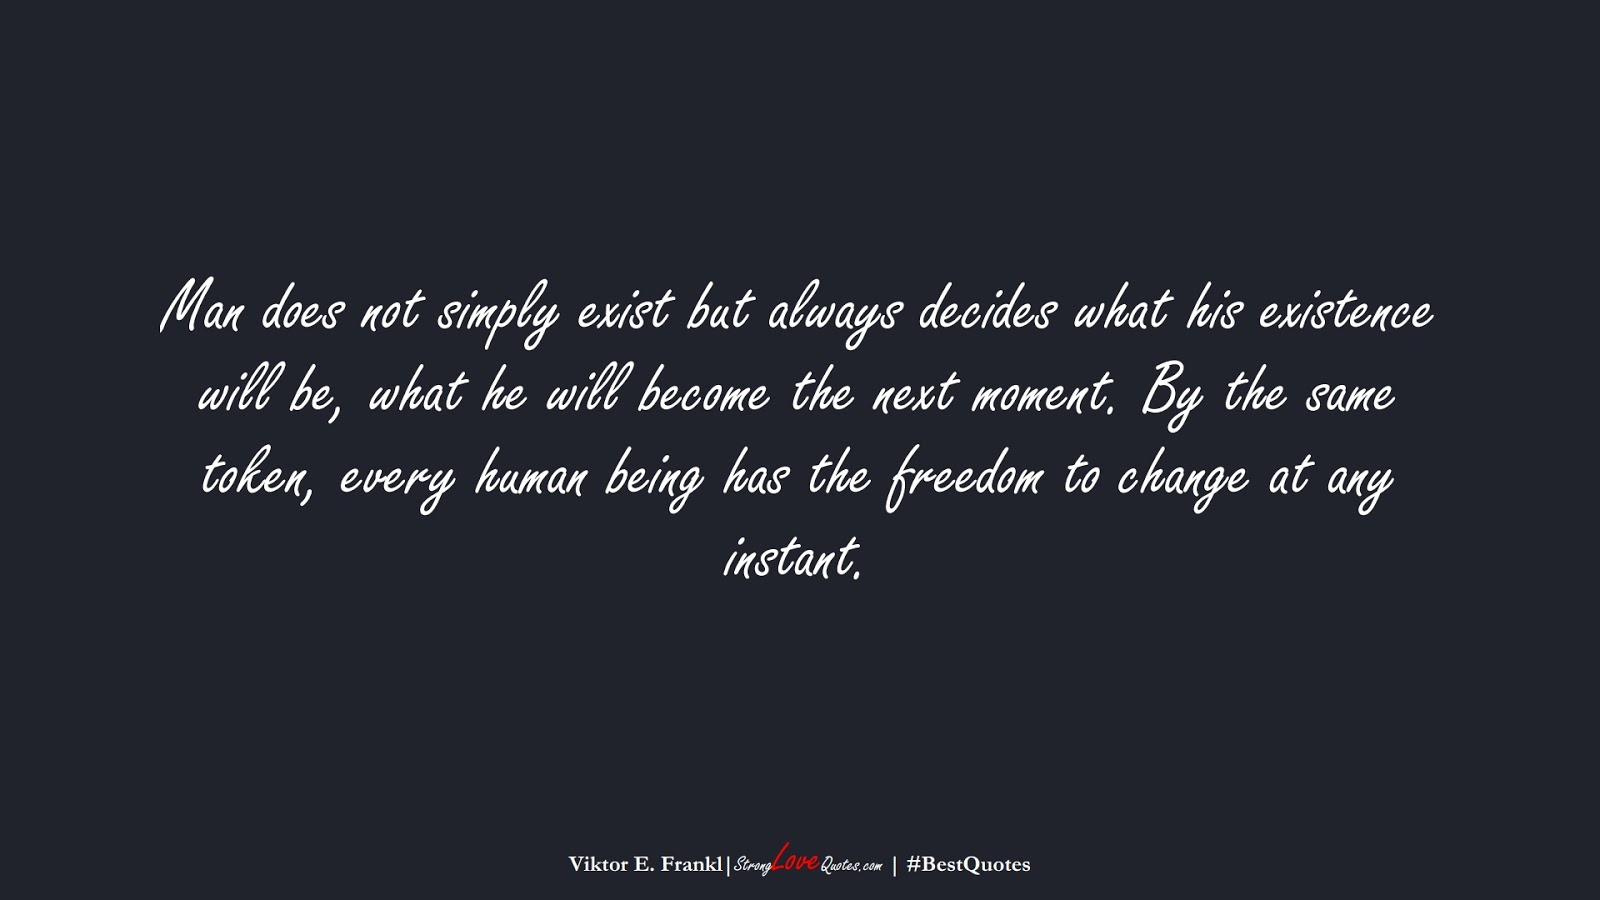 Man does not simply exist but always decides what his existence will be, what he will become the next moment. By the same token, every human being has the freedom to change at any instant. (Viktor E. Frankl);  #BestQuotes